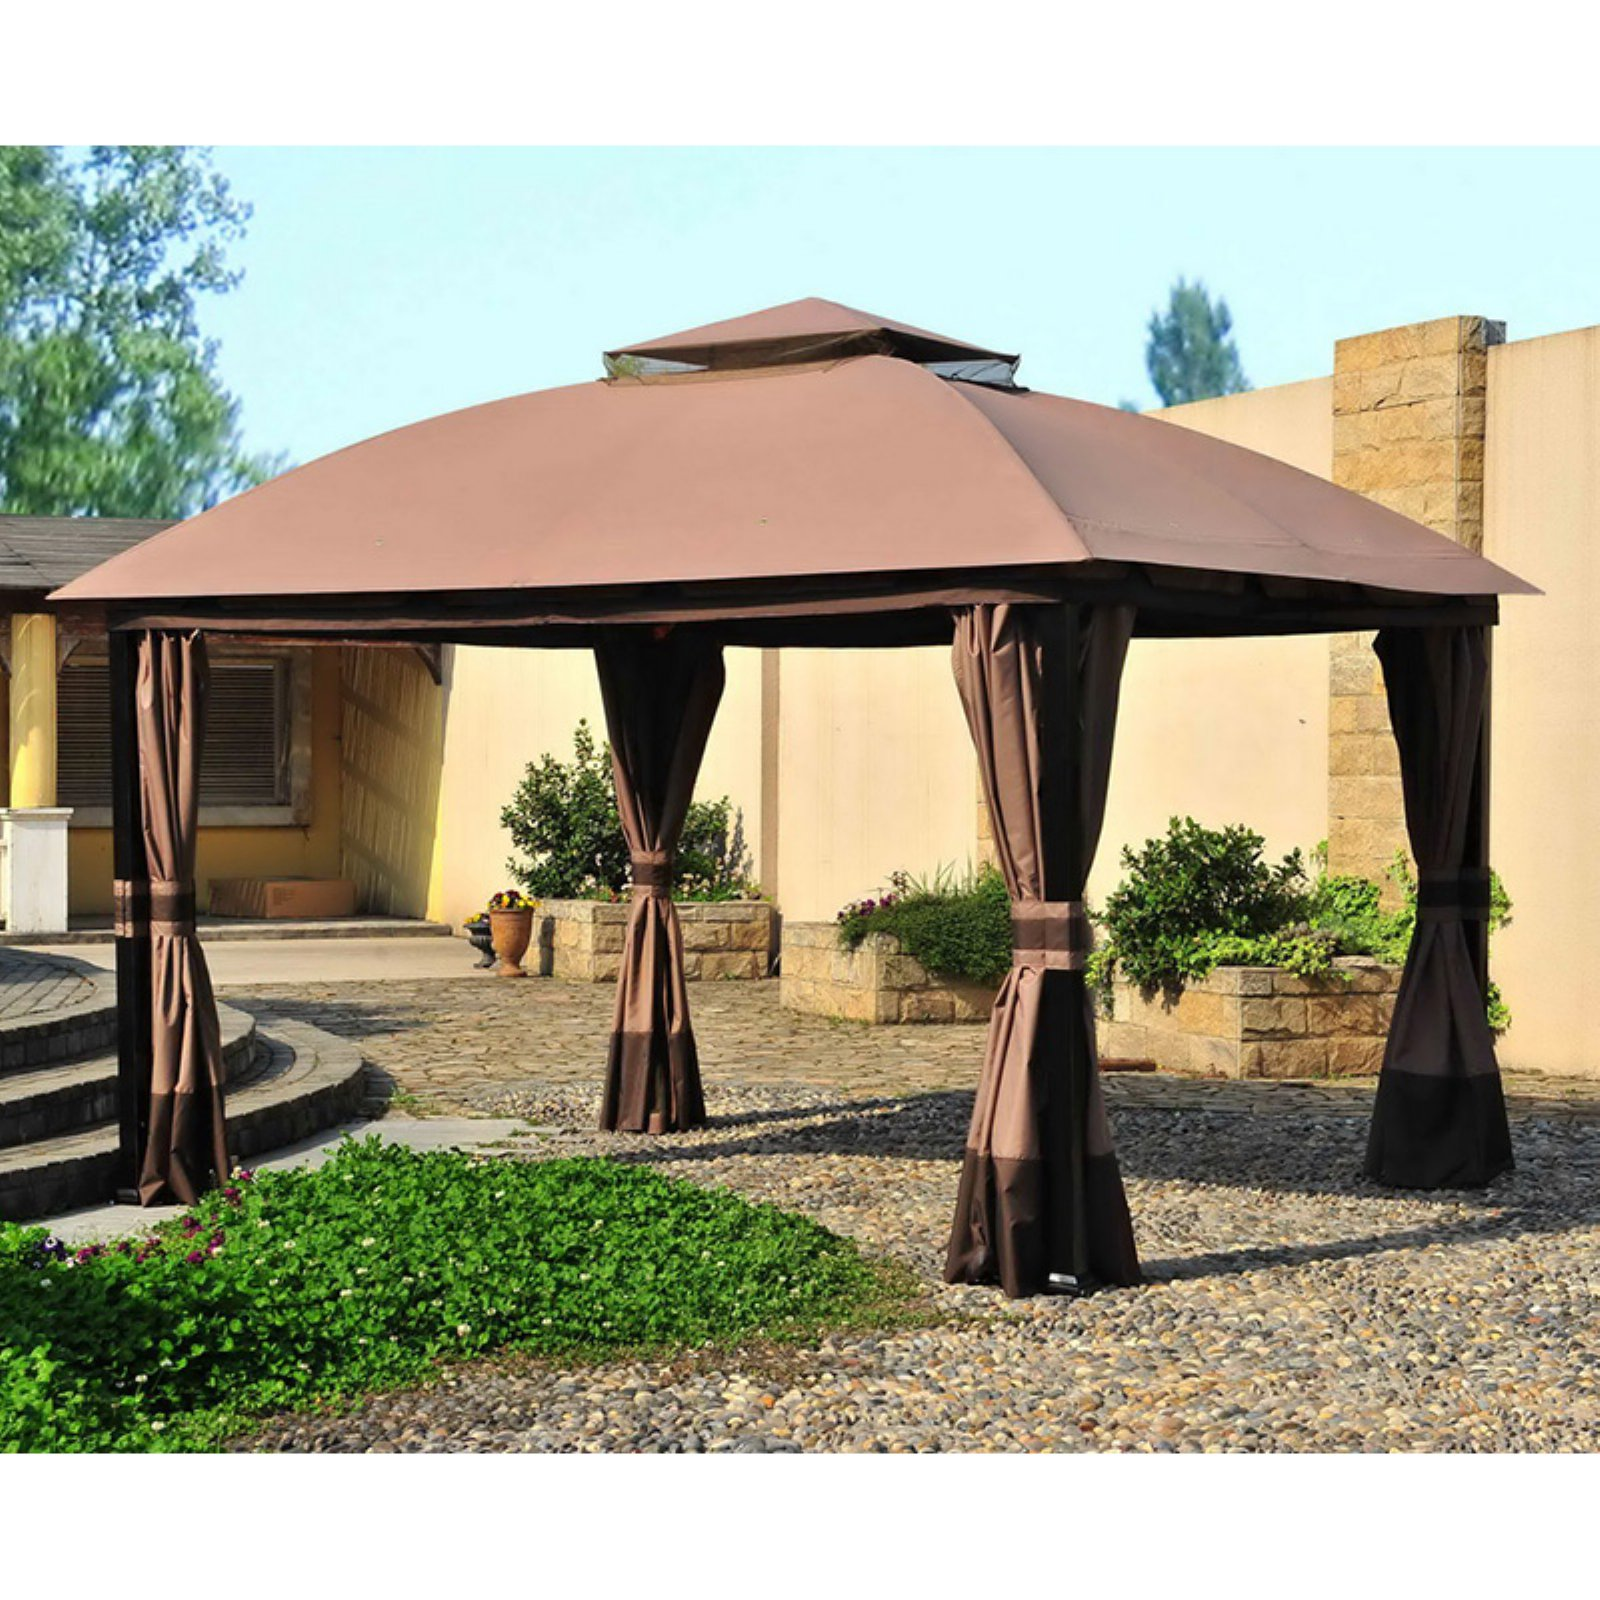 Sunjoy 11 X 13 Ft Replacement Canopy Cover For L Gz215pst A Deluxe South Hampton Gazebo Ginger Snap Dark Brown Replacement Canopy Gazebo Outdoor Gazebos